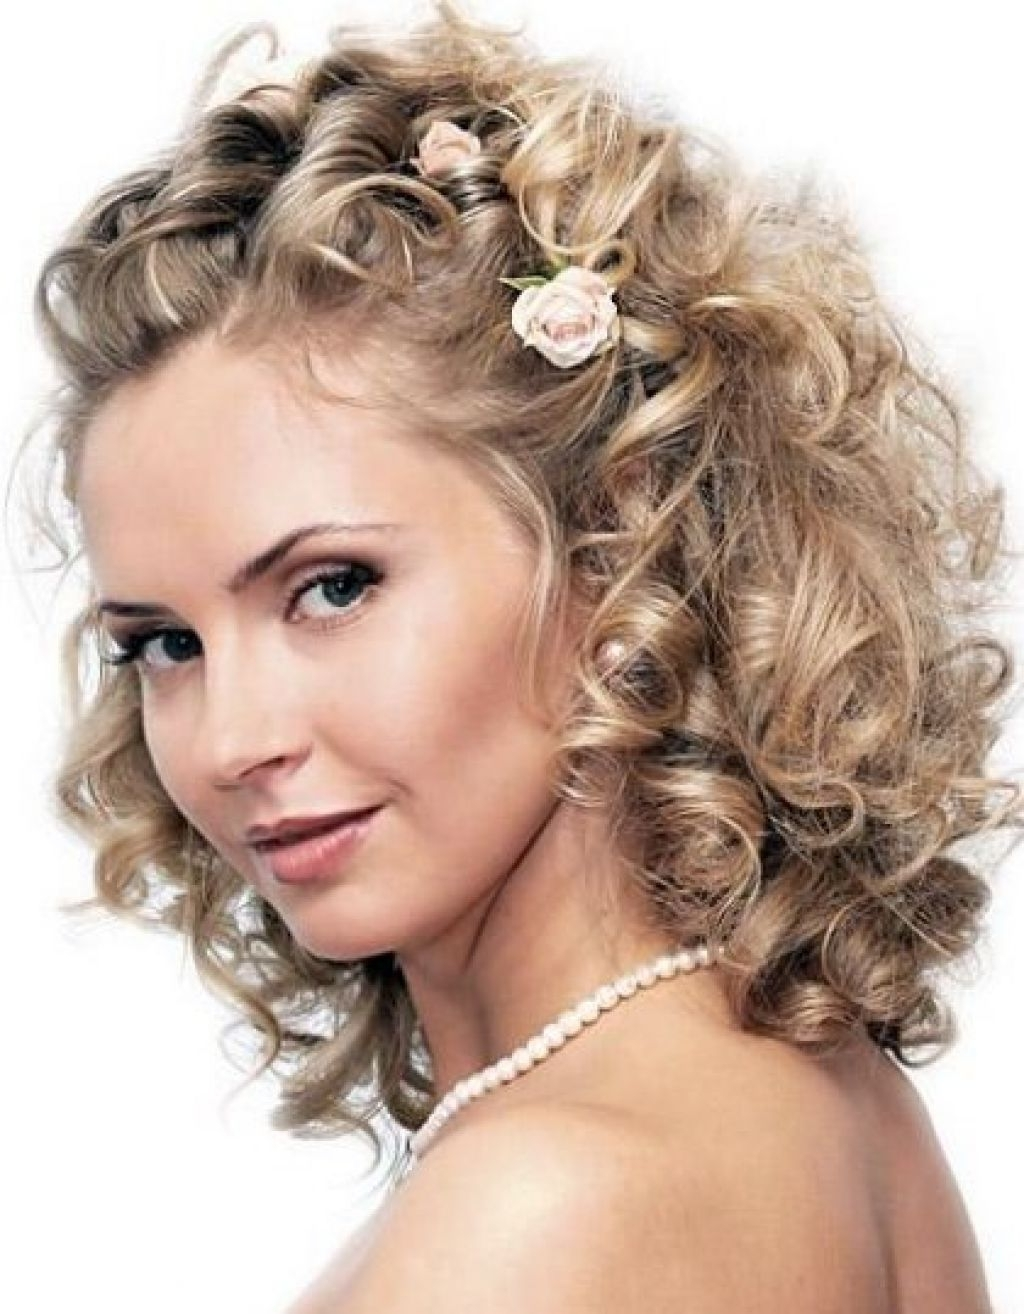 Most Recent Cute Wedding Hairstyles For Short Curly Hair Pertaining To Cute Updo Hairstyles For Short Curly Hair Styles Wedding Naturally (View 6 of 15)